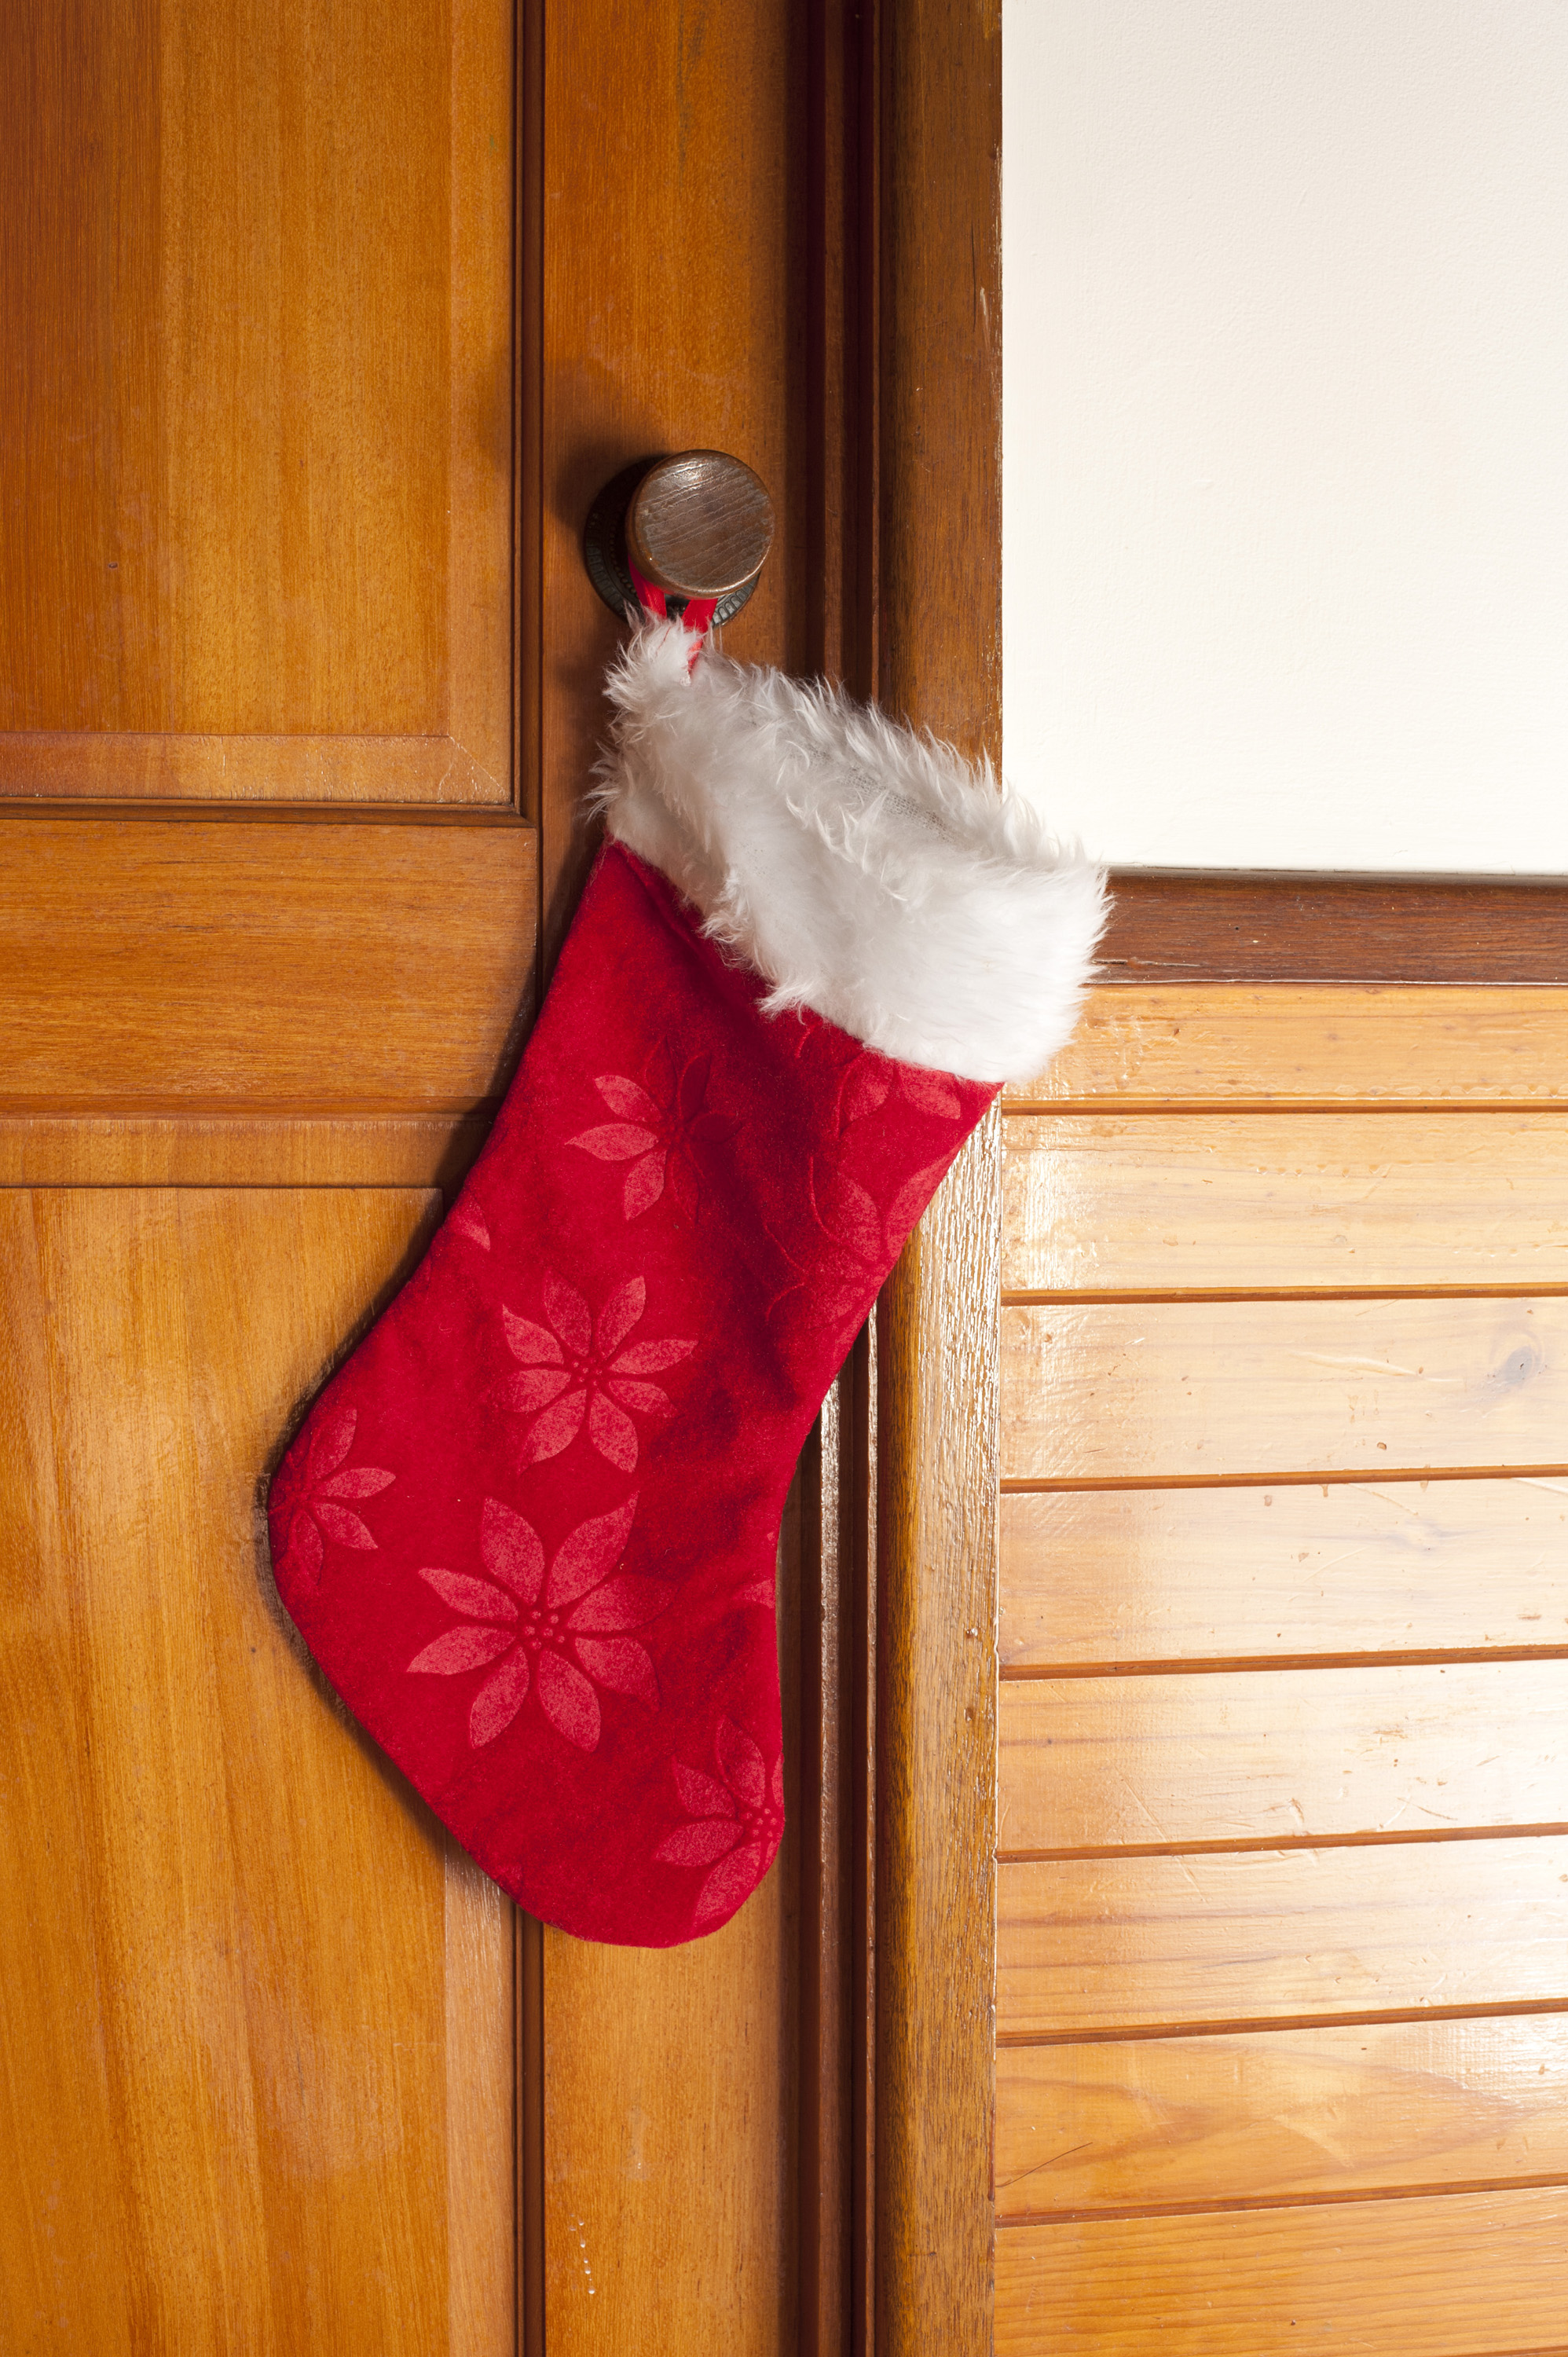 Photo Of Empty Red Christmas Stocking Hanging On A Door